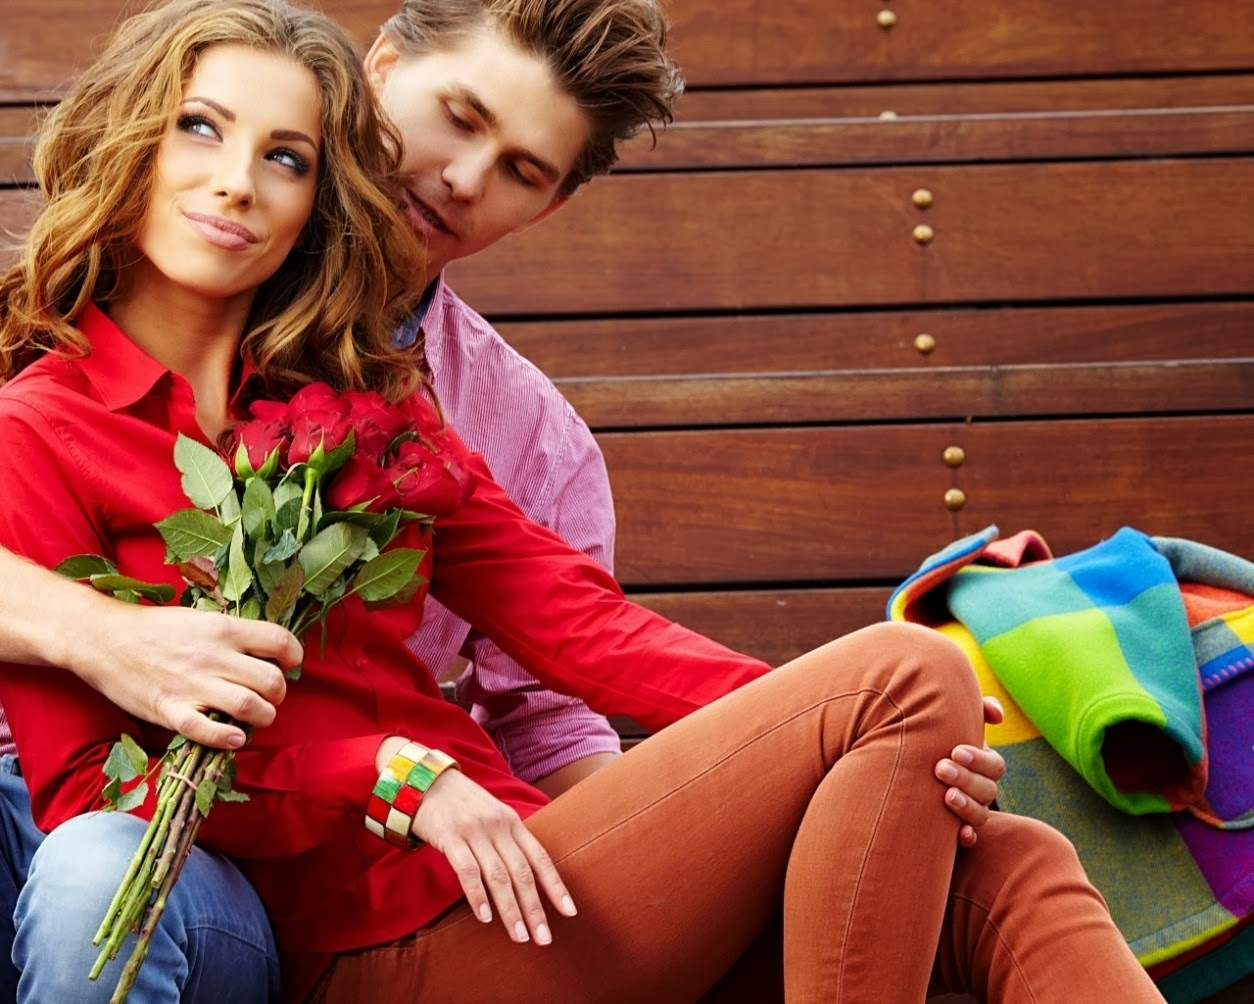 love romantic boys and girls wallpapers and pictures (2014